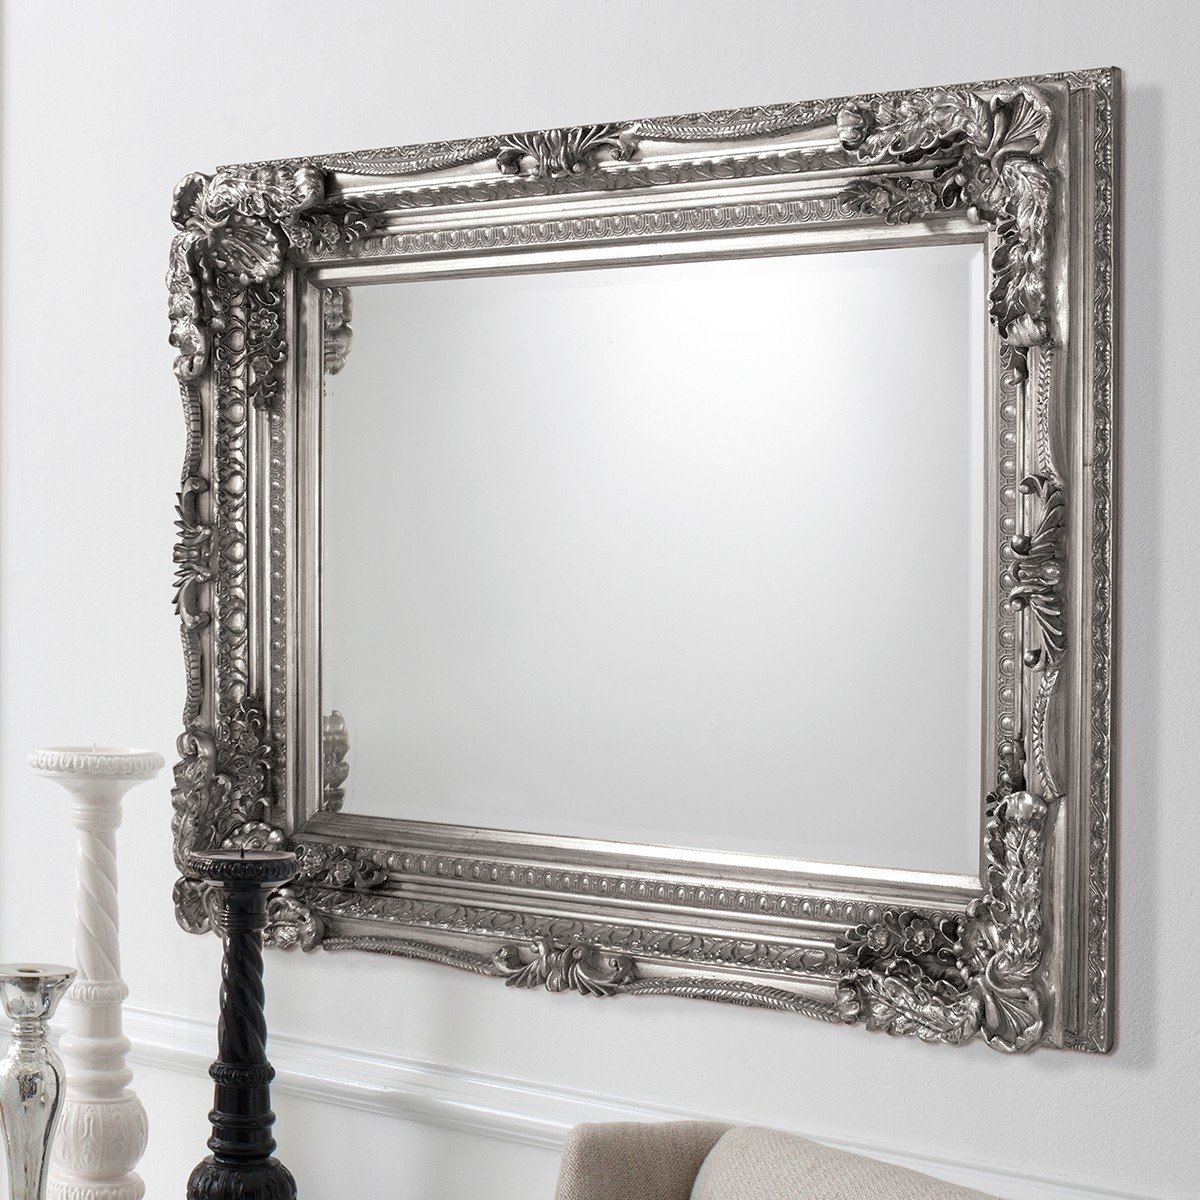 Versailles Baroque Mirror From 999999 Luxury Wall Mirrors With Baroque Mirror White (Image 9 of 15)